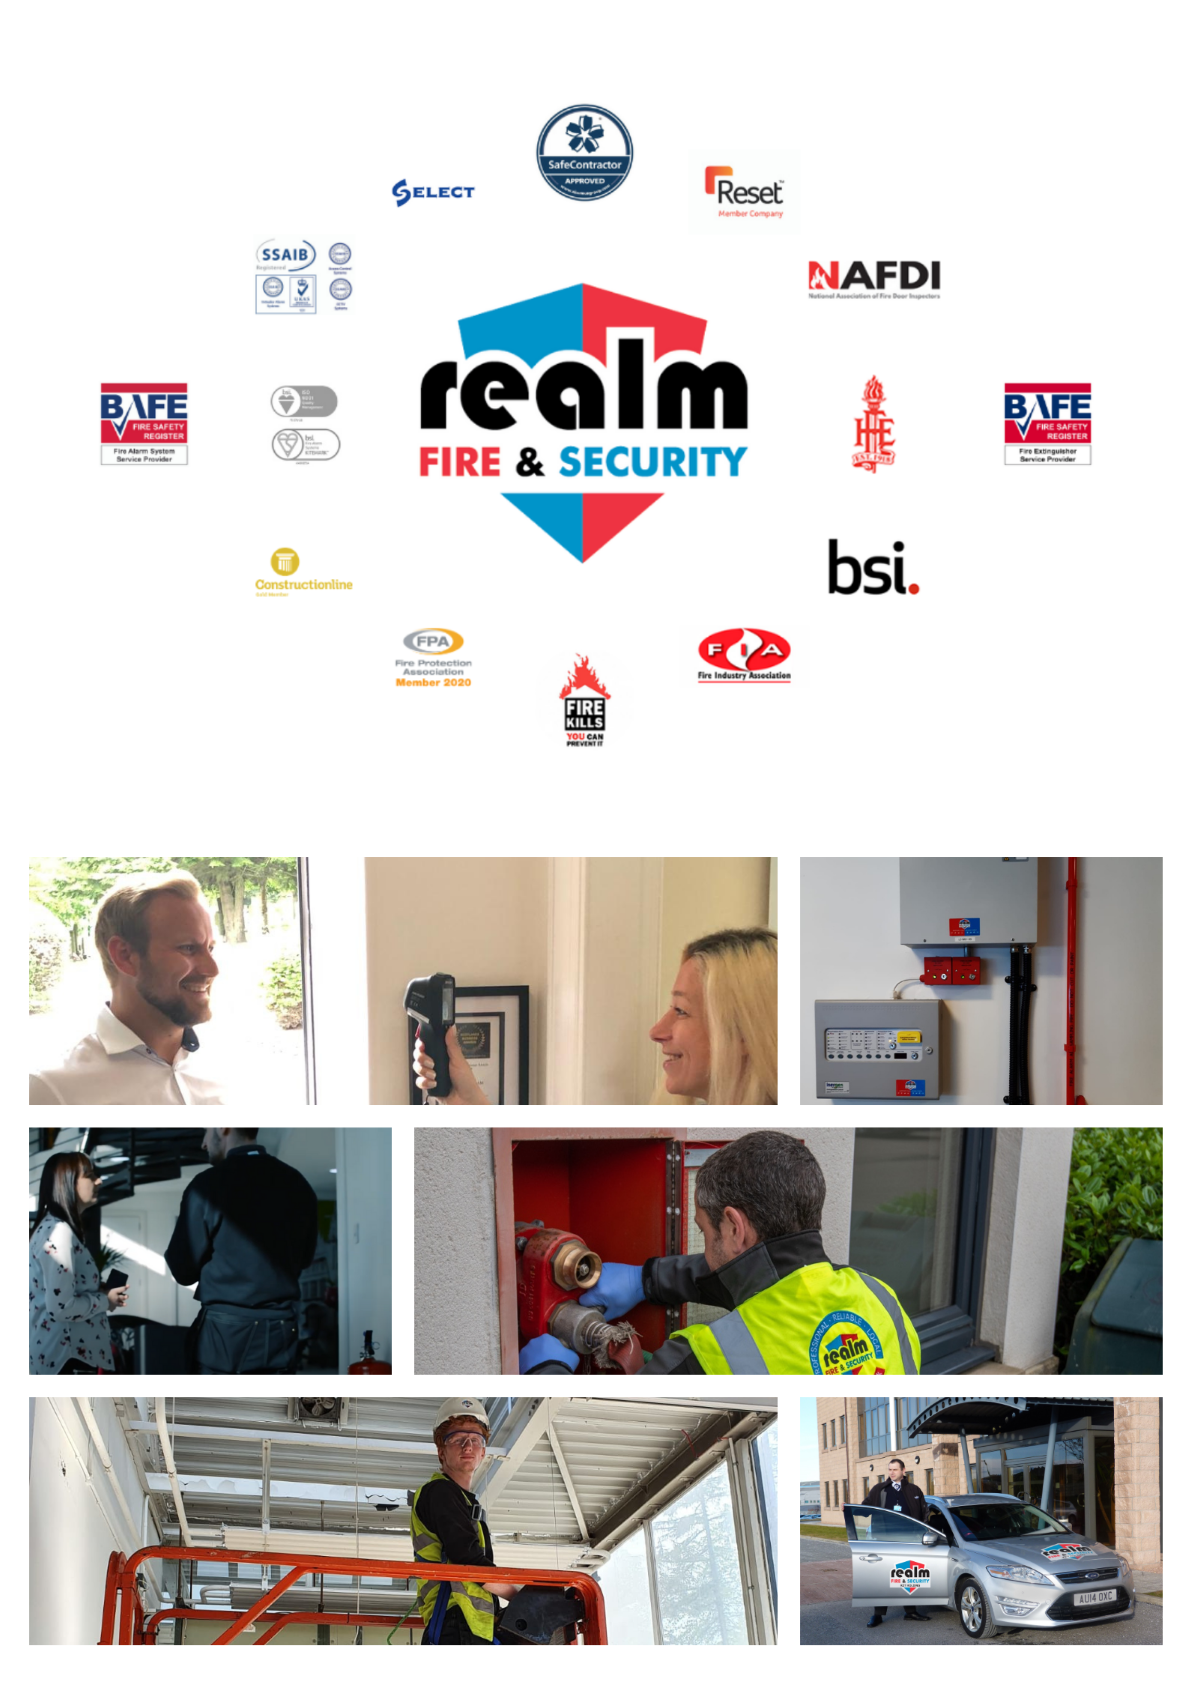 Realm FS - Why Choose Us?